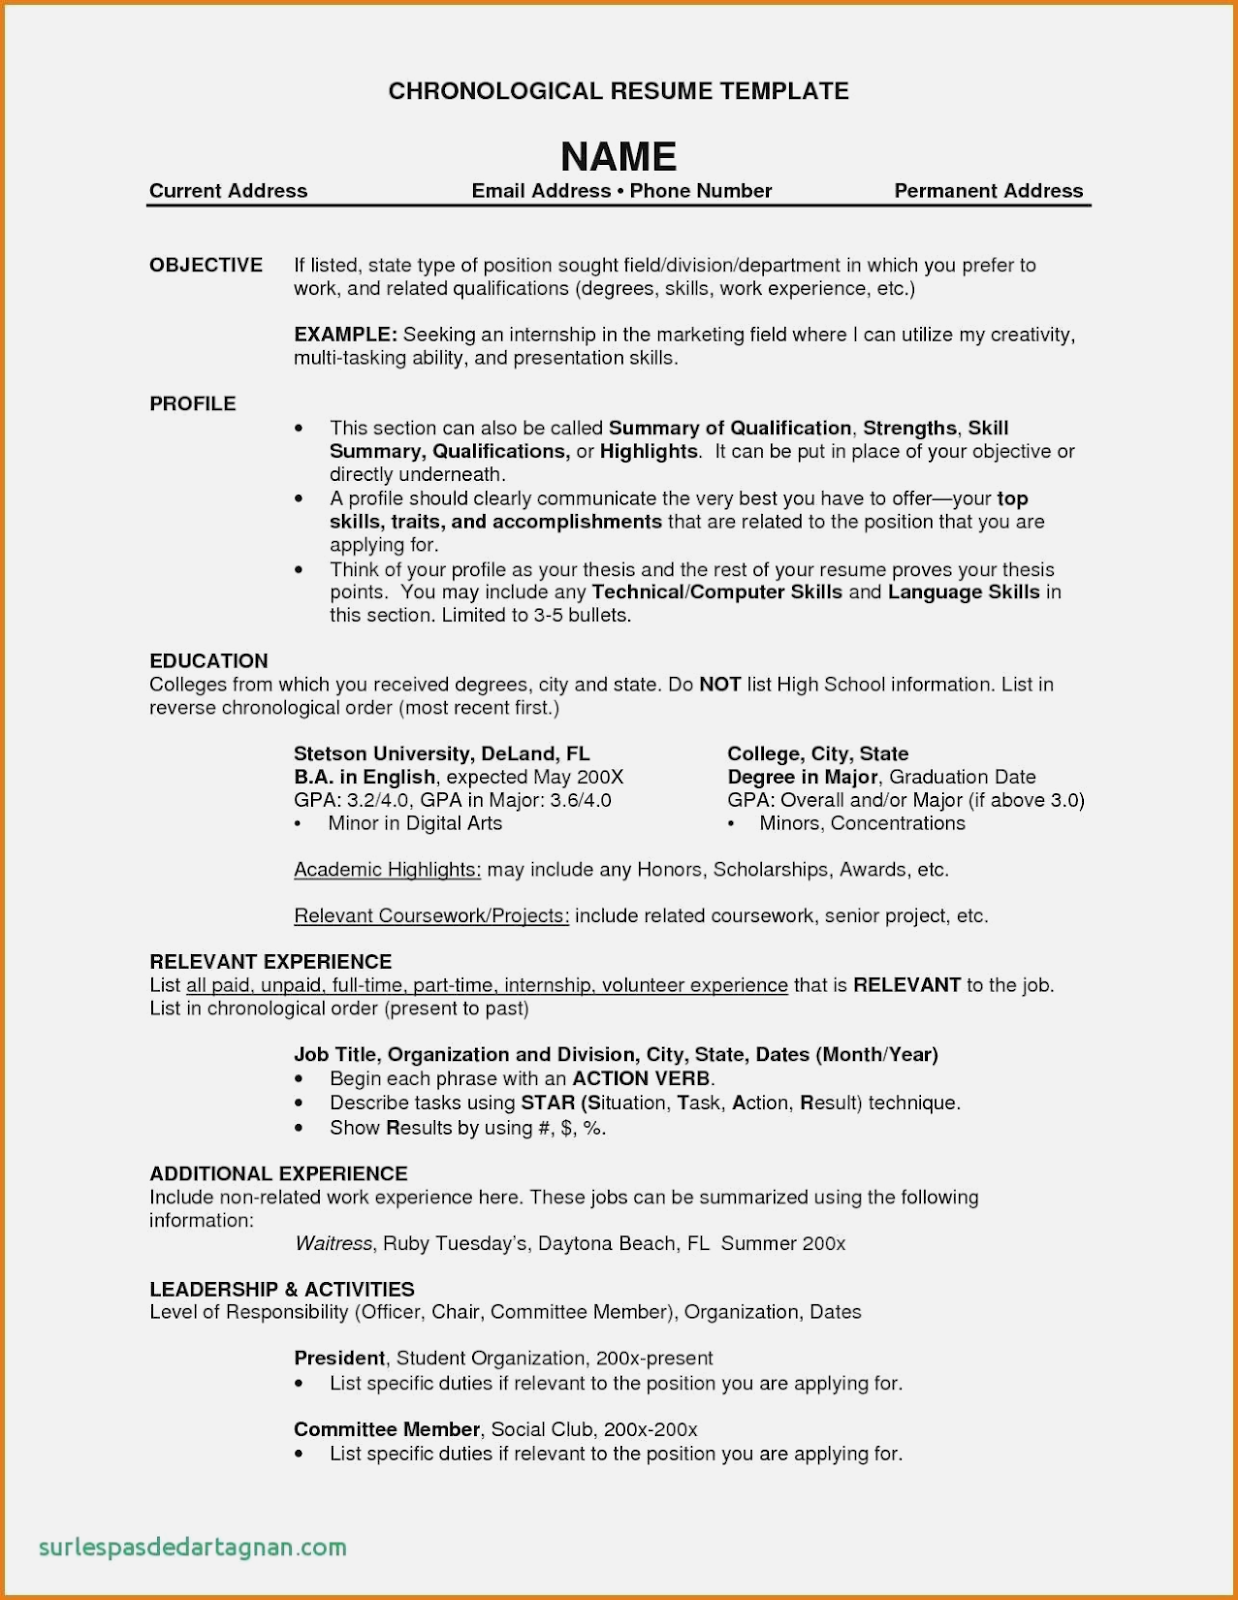 A Good Resume Title A Good Resume Title For Customer Service What Is A Good Resume Title For Resume Examples Chronological Resume Template Best Resume Template